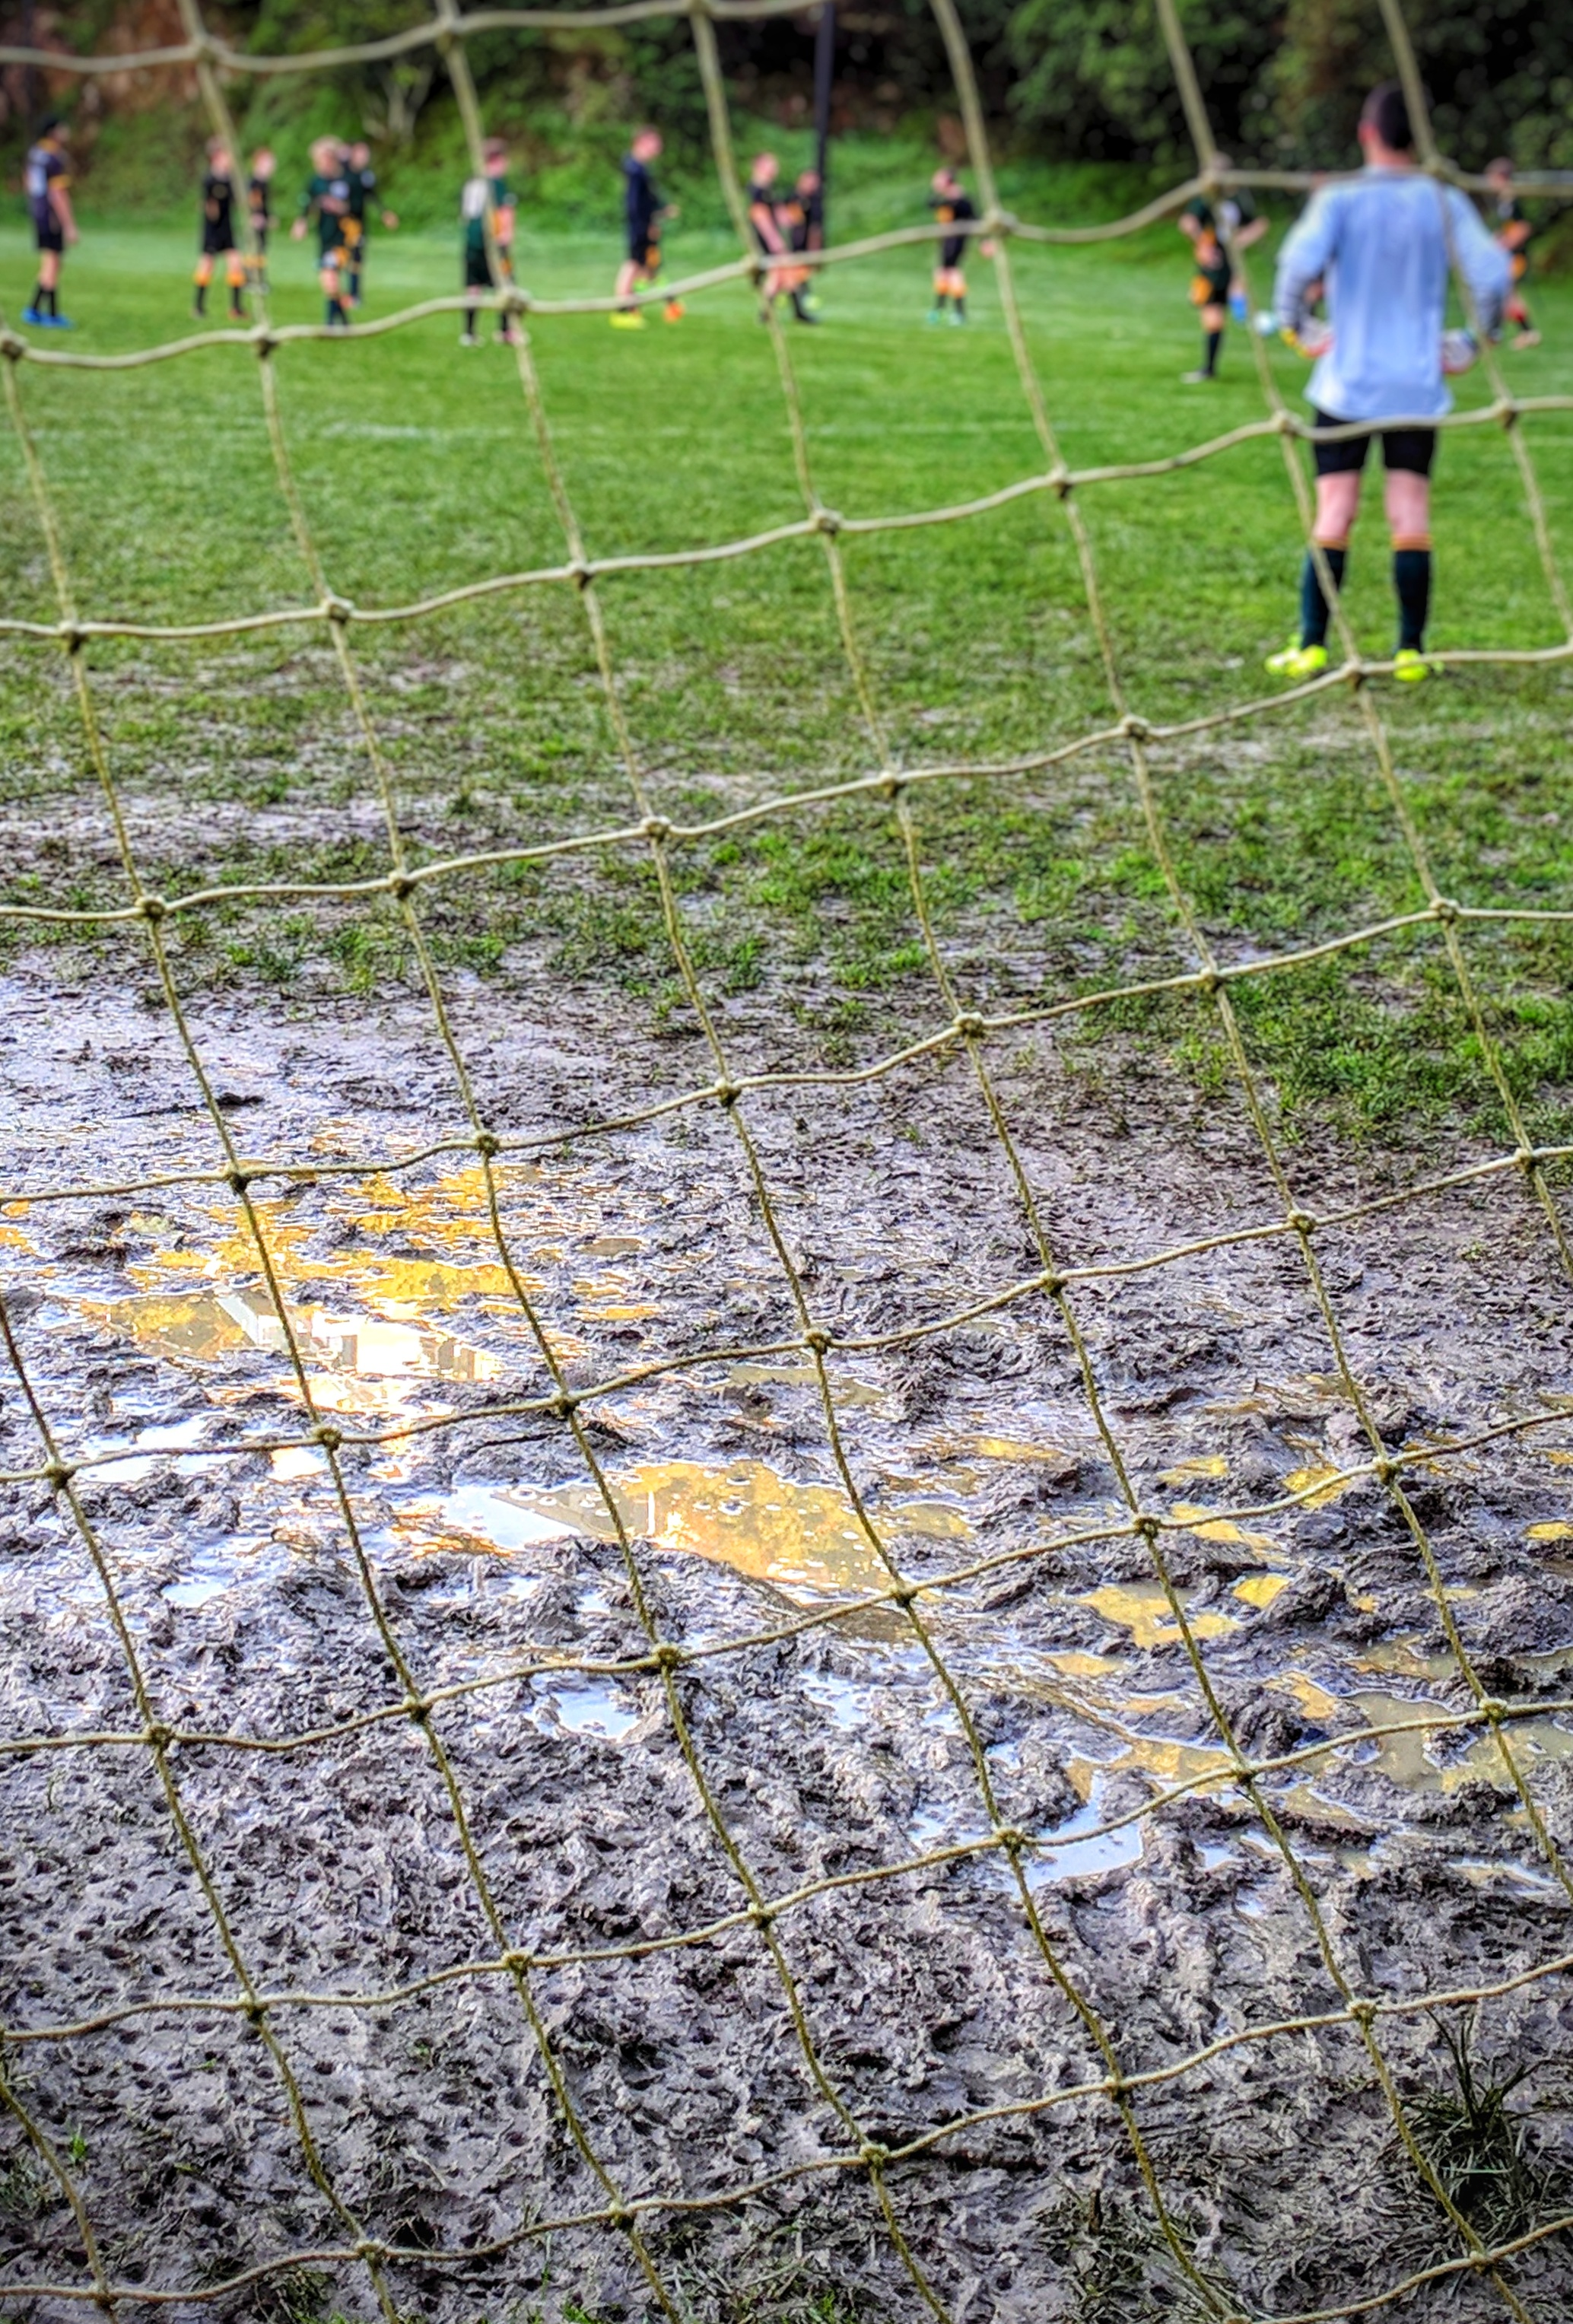 Muddy puddle centre front of the goals